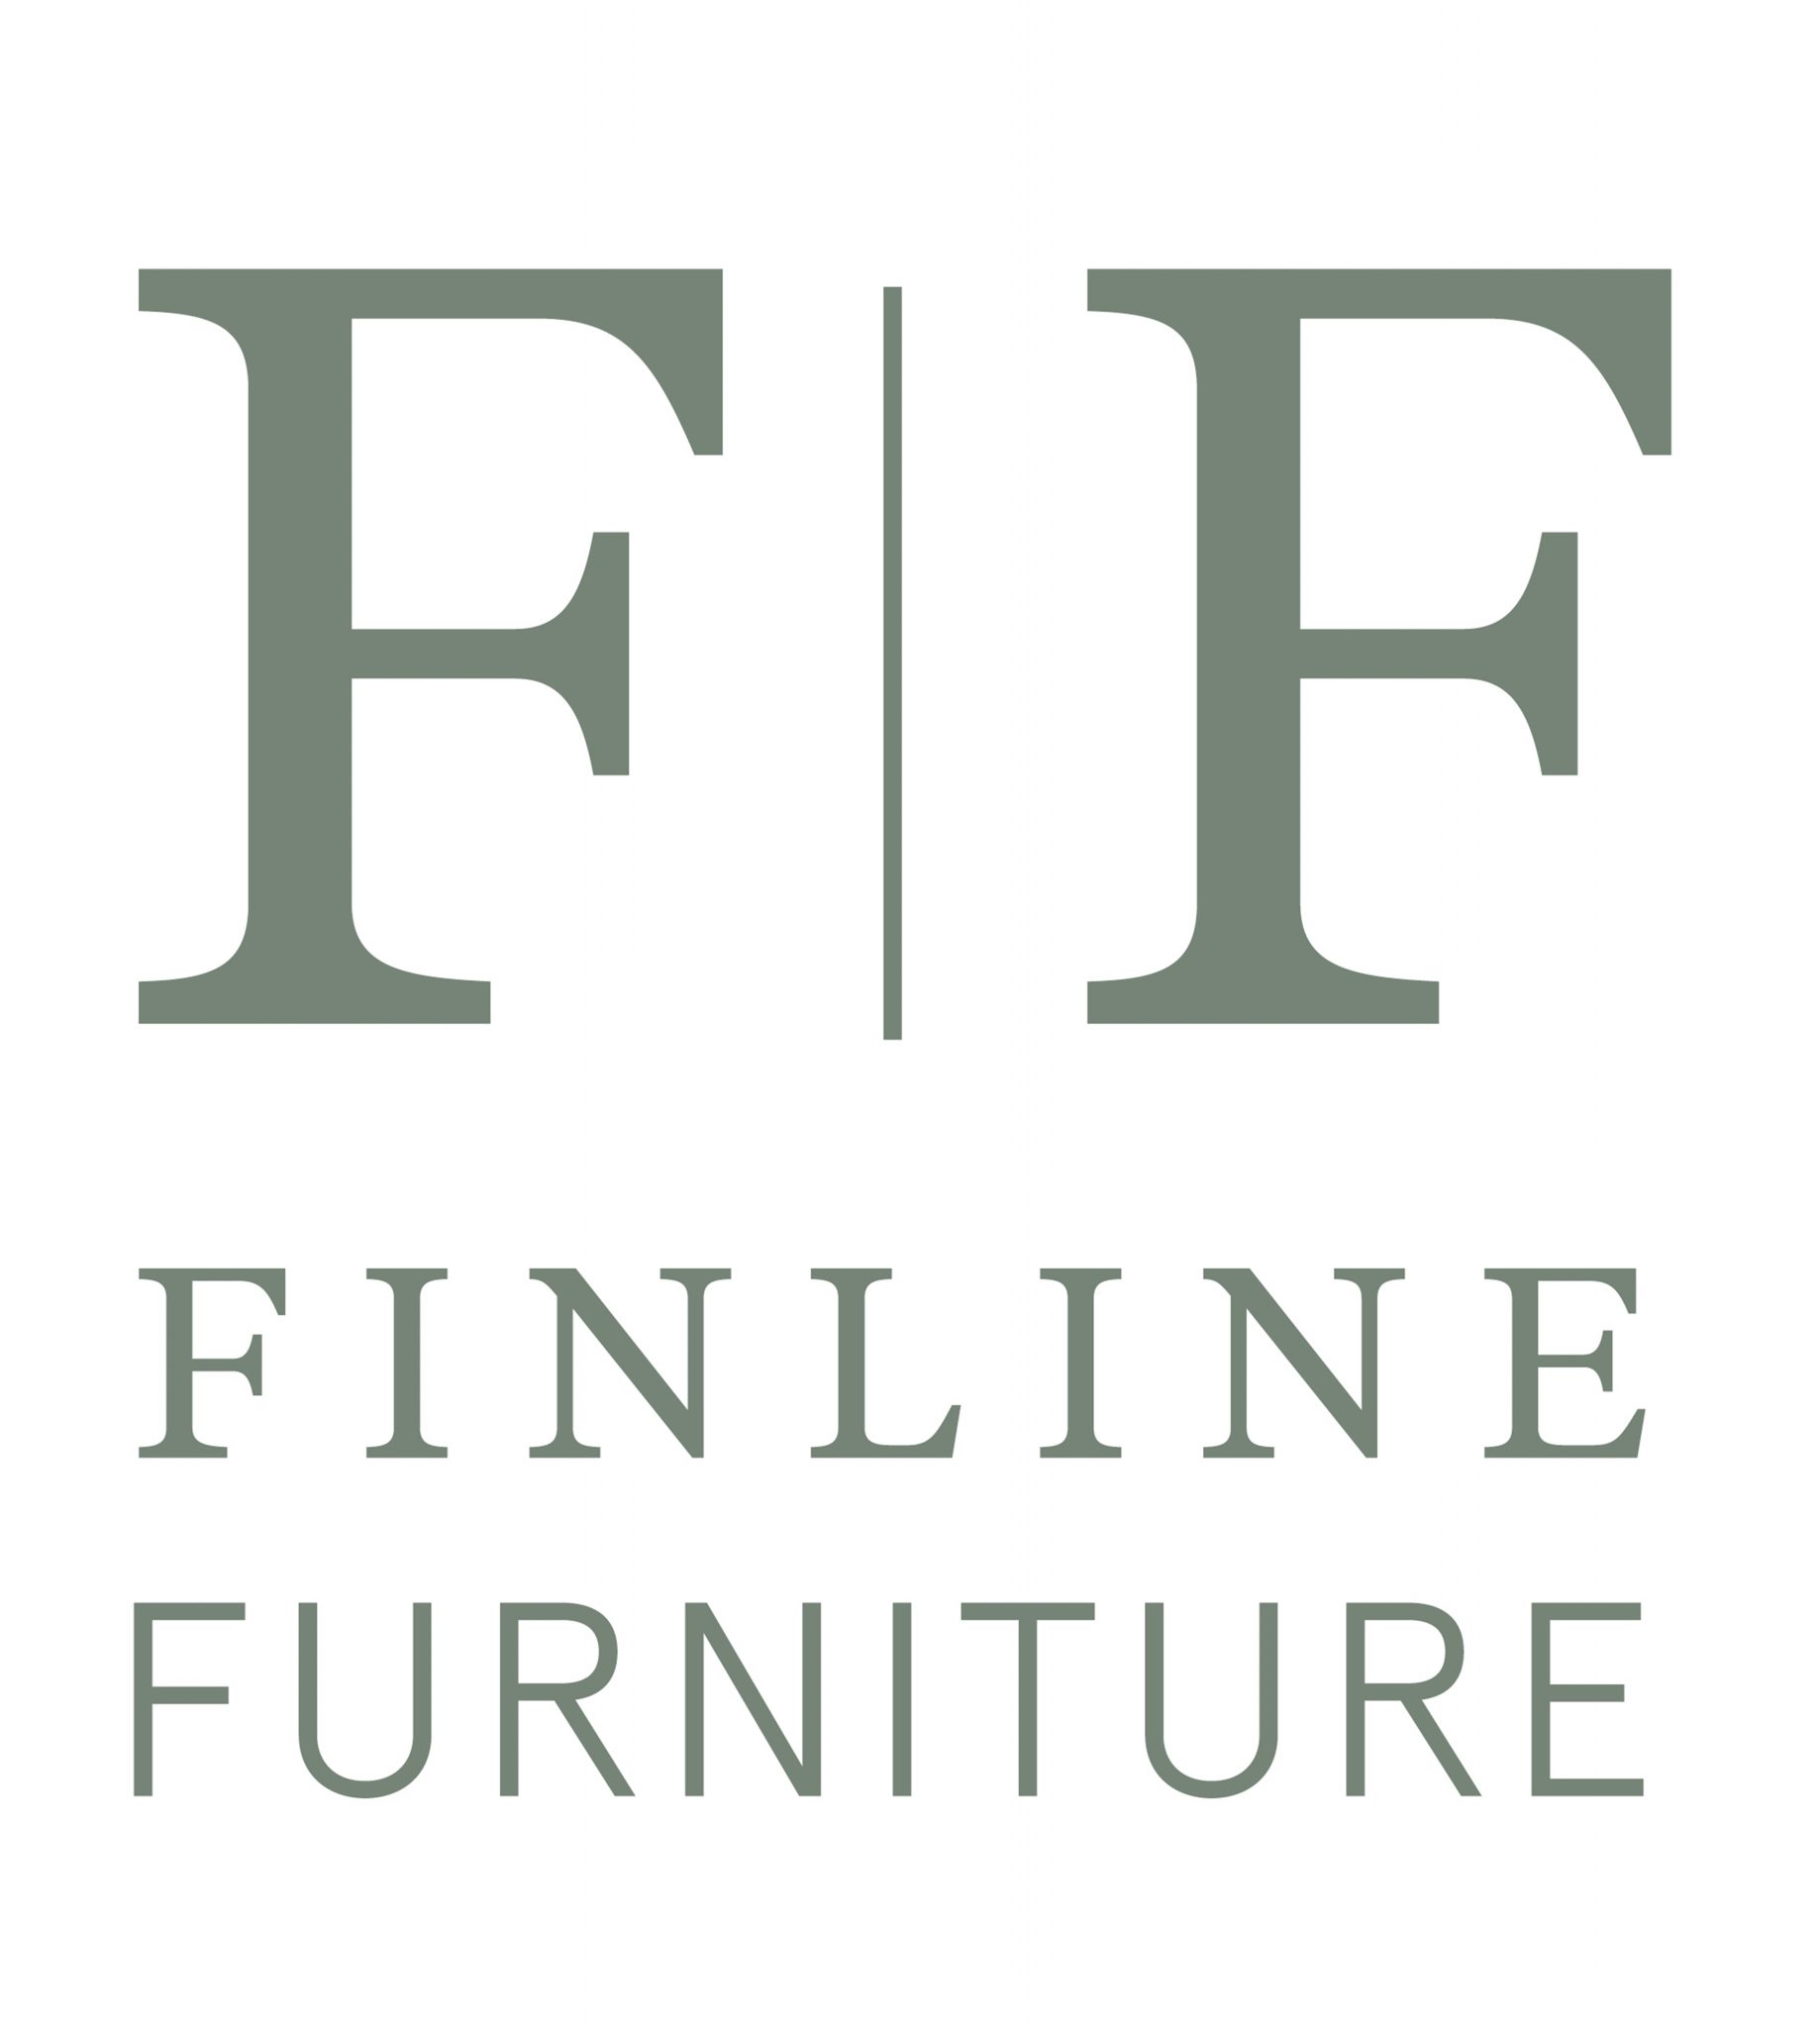 Finline Furniture